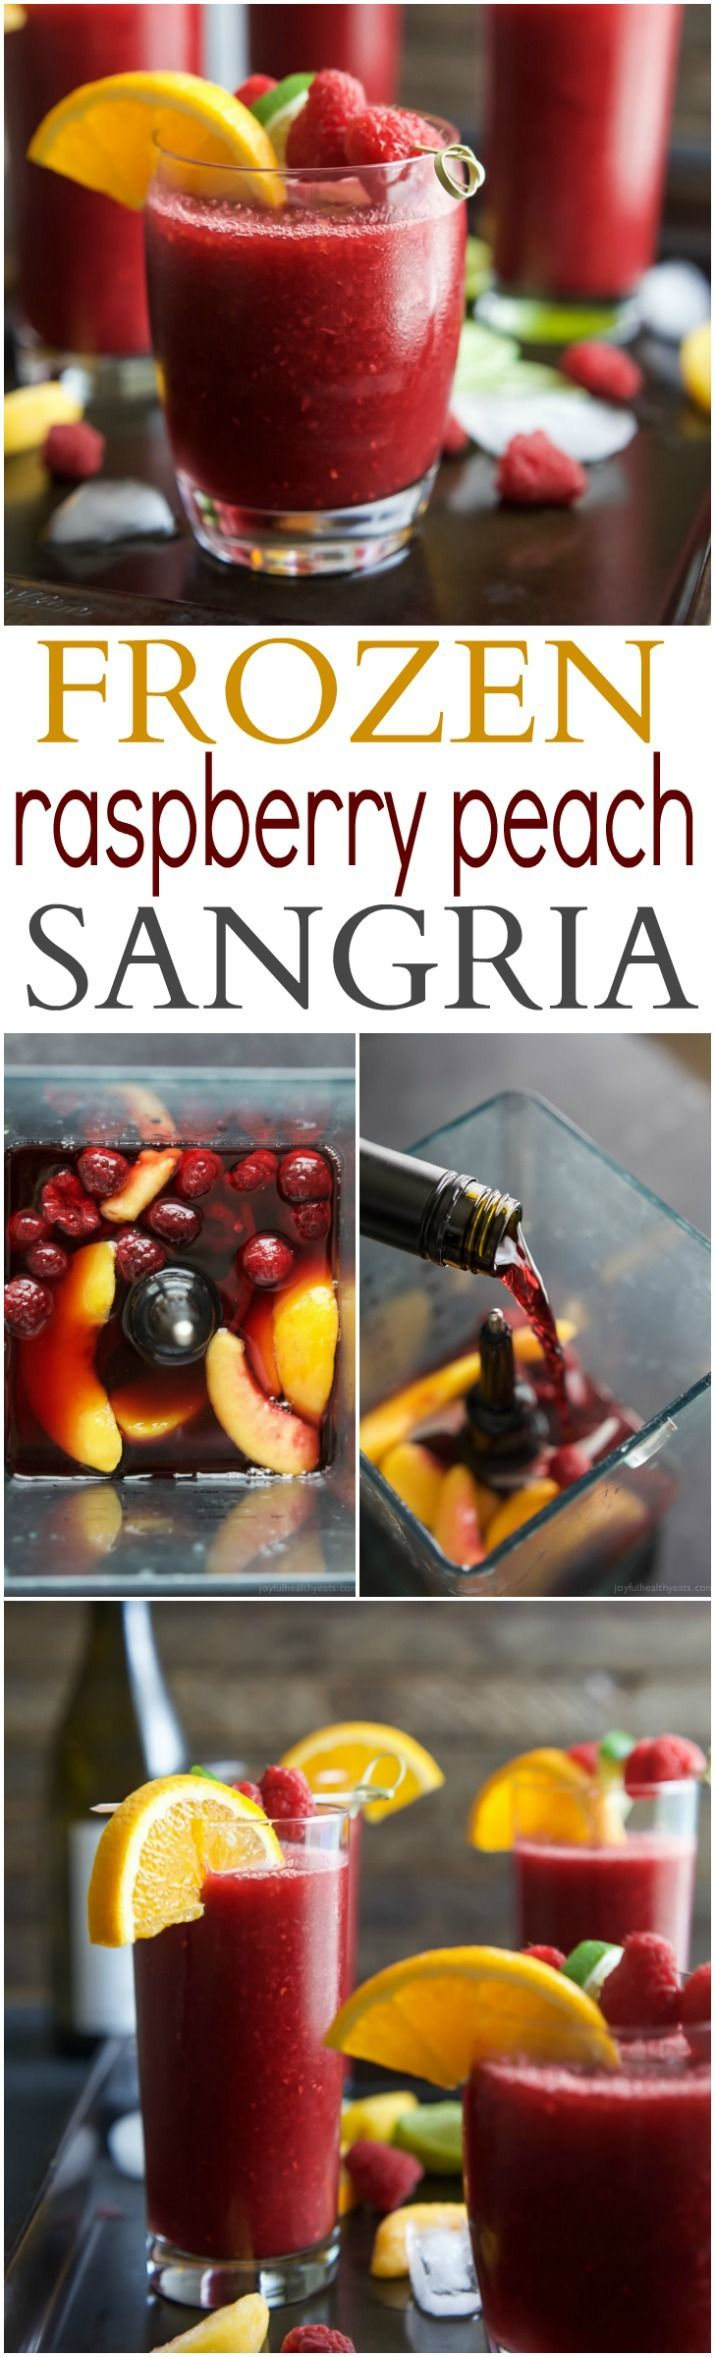 Frozen Raspberry Peach Sangria | What Drink You Should Make on Your 21st Birthday, According to Your Zodiac Sign | http://www.hercampus.com/health/food/what-drink-you-should-make-your-21st-birthday-according-your-zodiac-sign